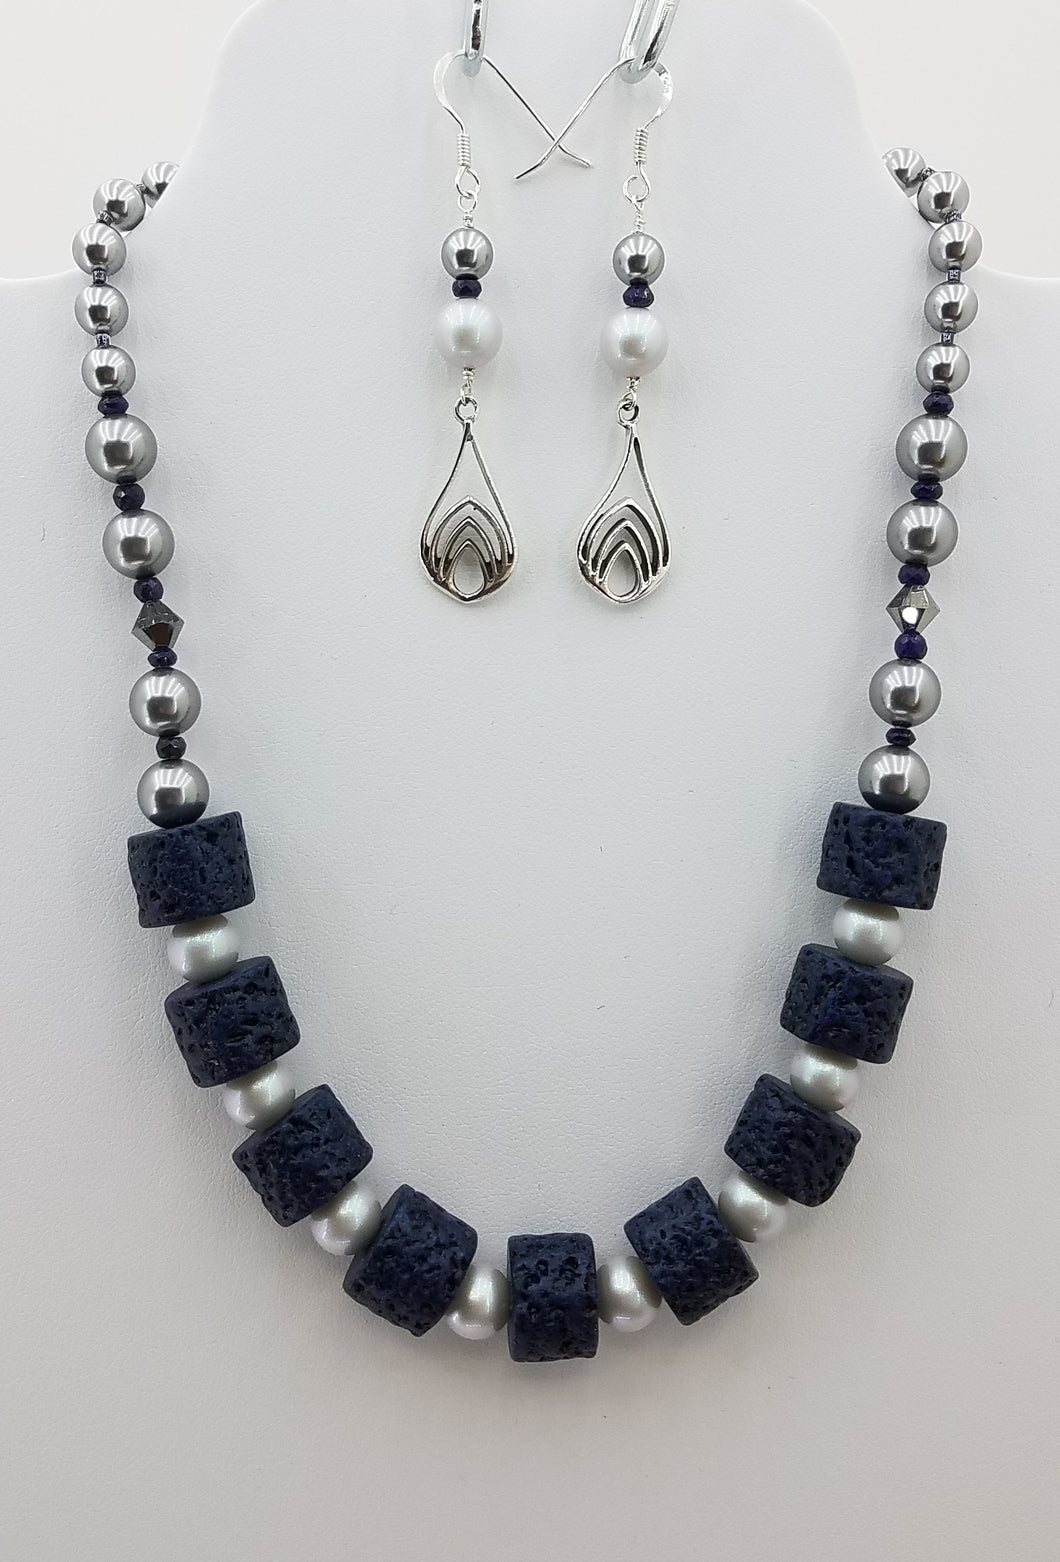 Indigo Blue Ceramic Beads with Grey Swarovski Pearls & Crystals Necklace & Earrings